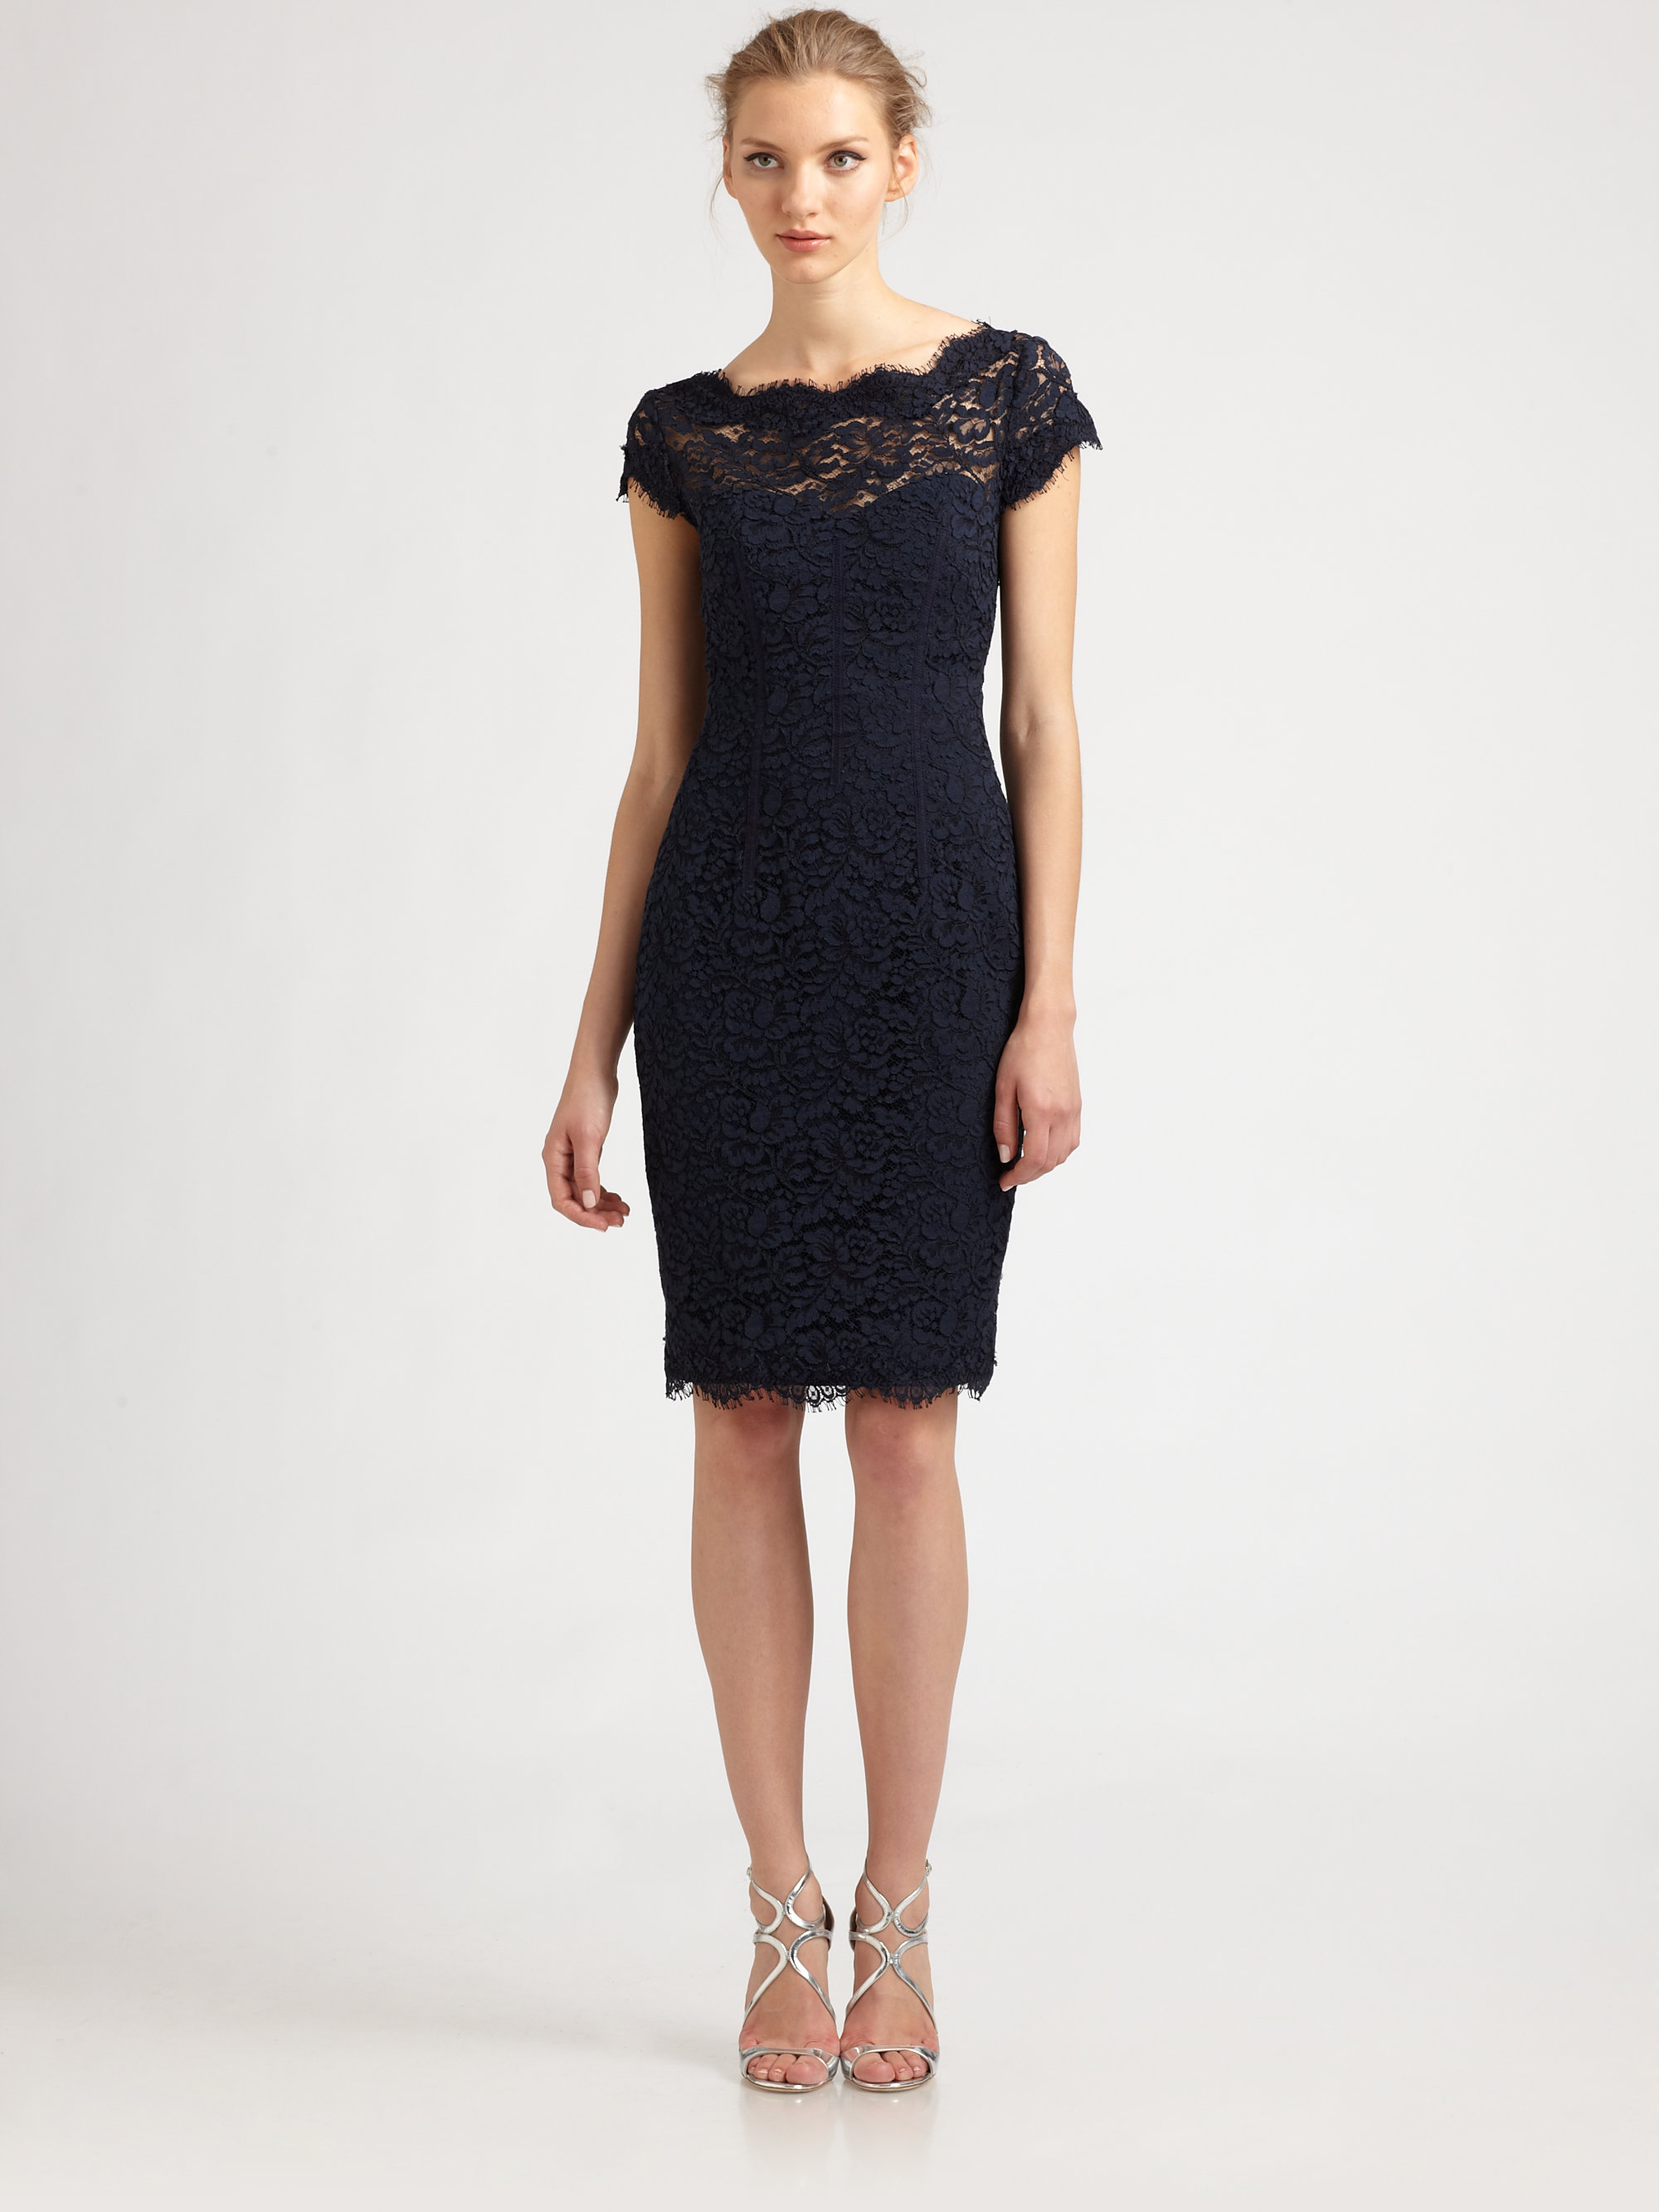 Lyst - Ml monique lhuillier Diamondback Lace Dress in Blue